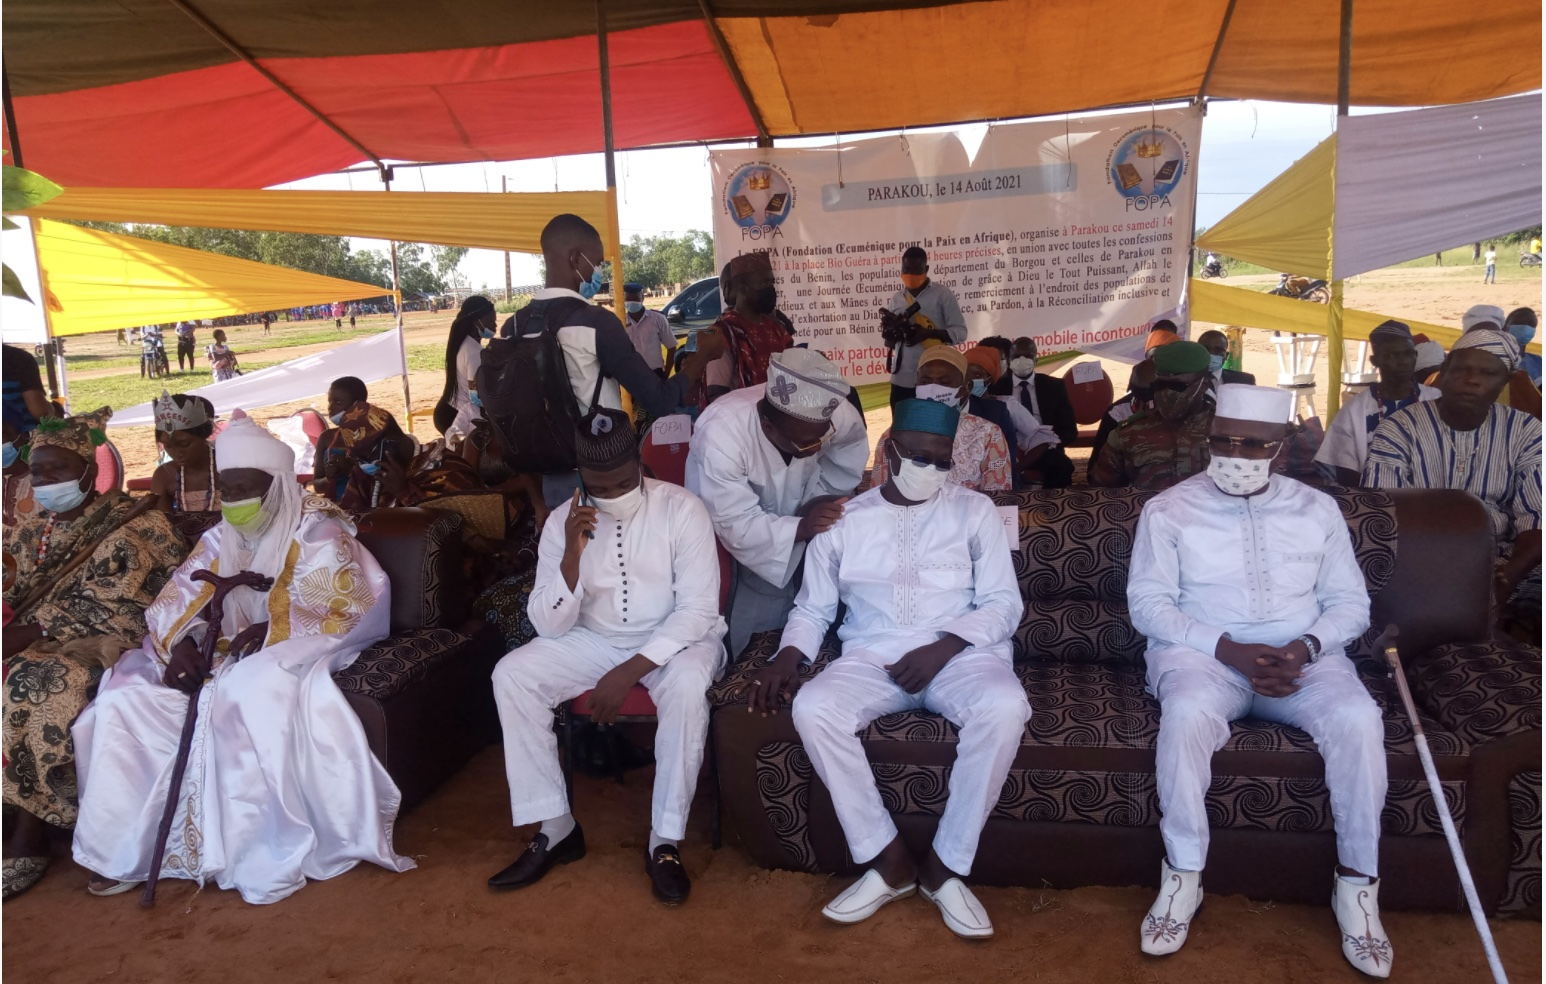 Benin: Traditional kings and religious leaders pray for peace in Parakou